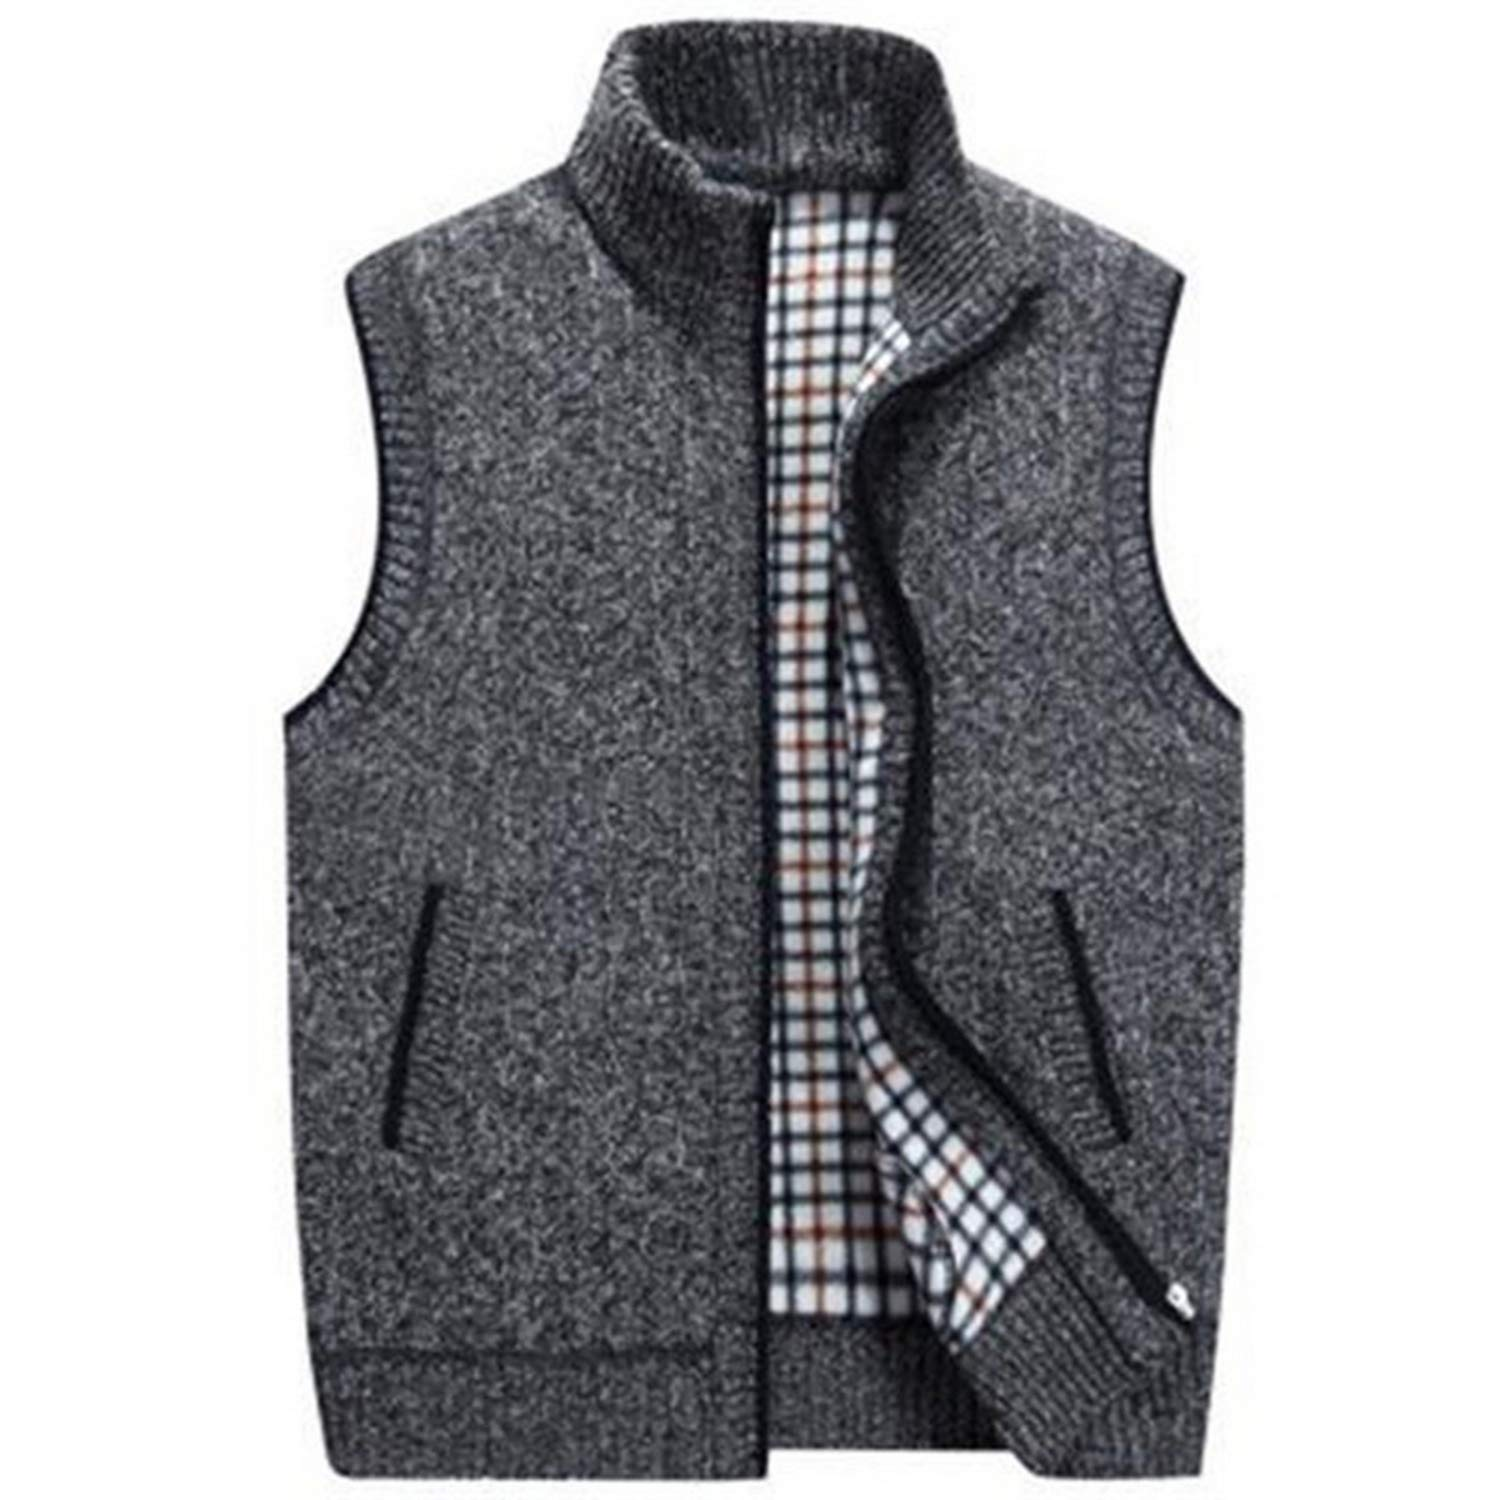 Vest Mens Sleeveless Knitted Vest Jacket 2019 New Warm Fleece Sleeveless Sweatercoat,Blue,XXXL,United States